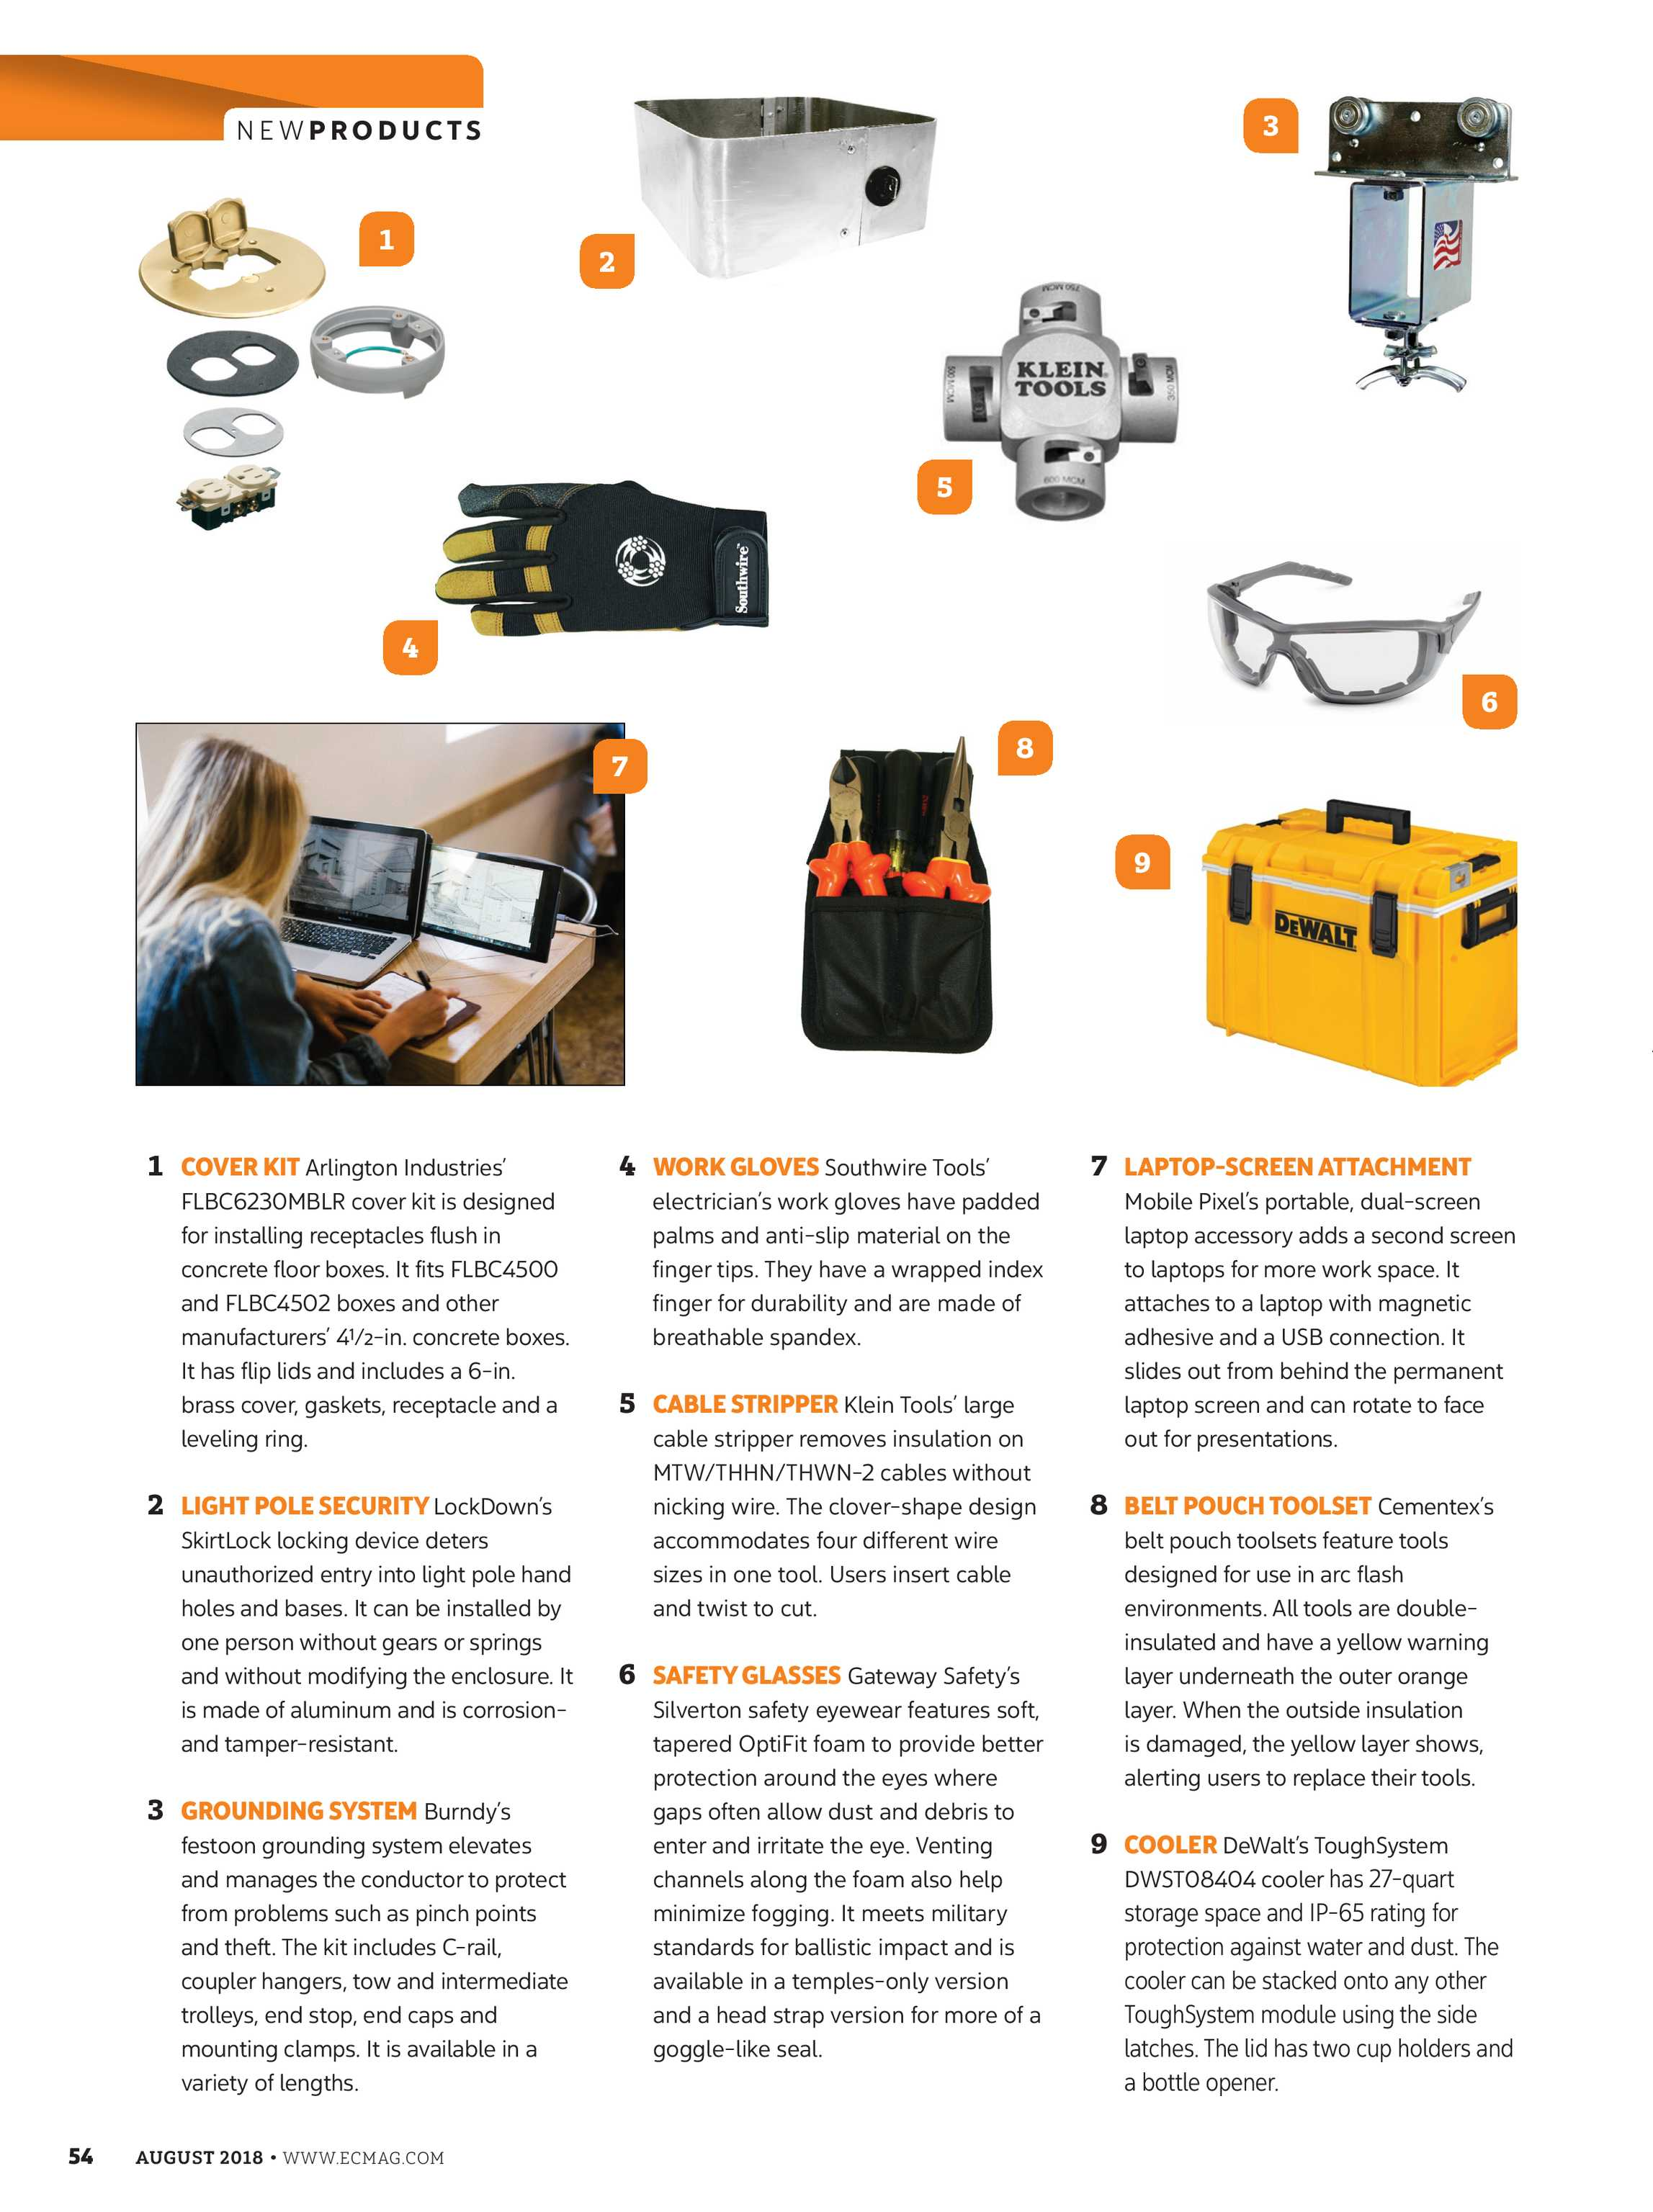 Electrical Contractor - August 2018 - page 54